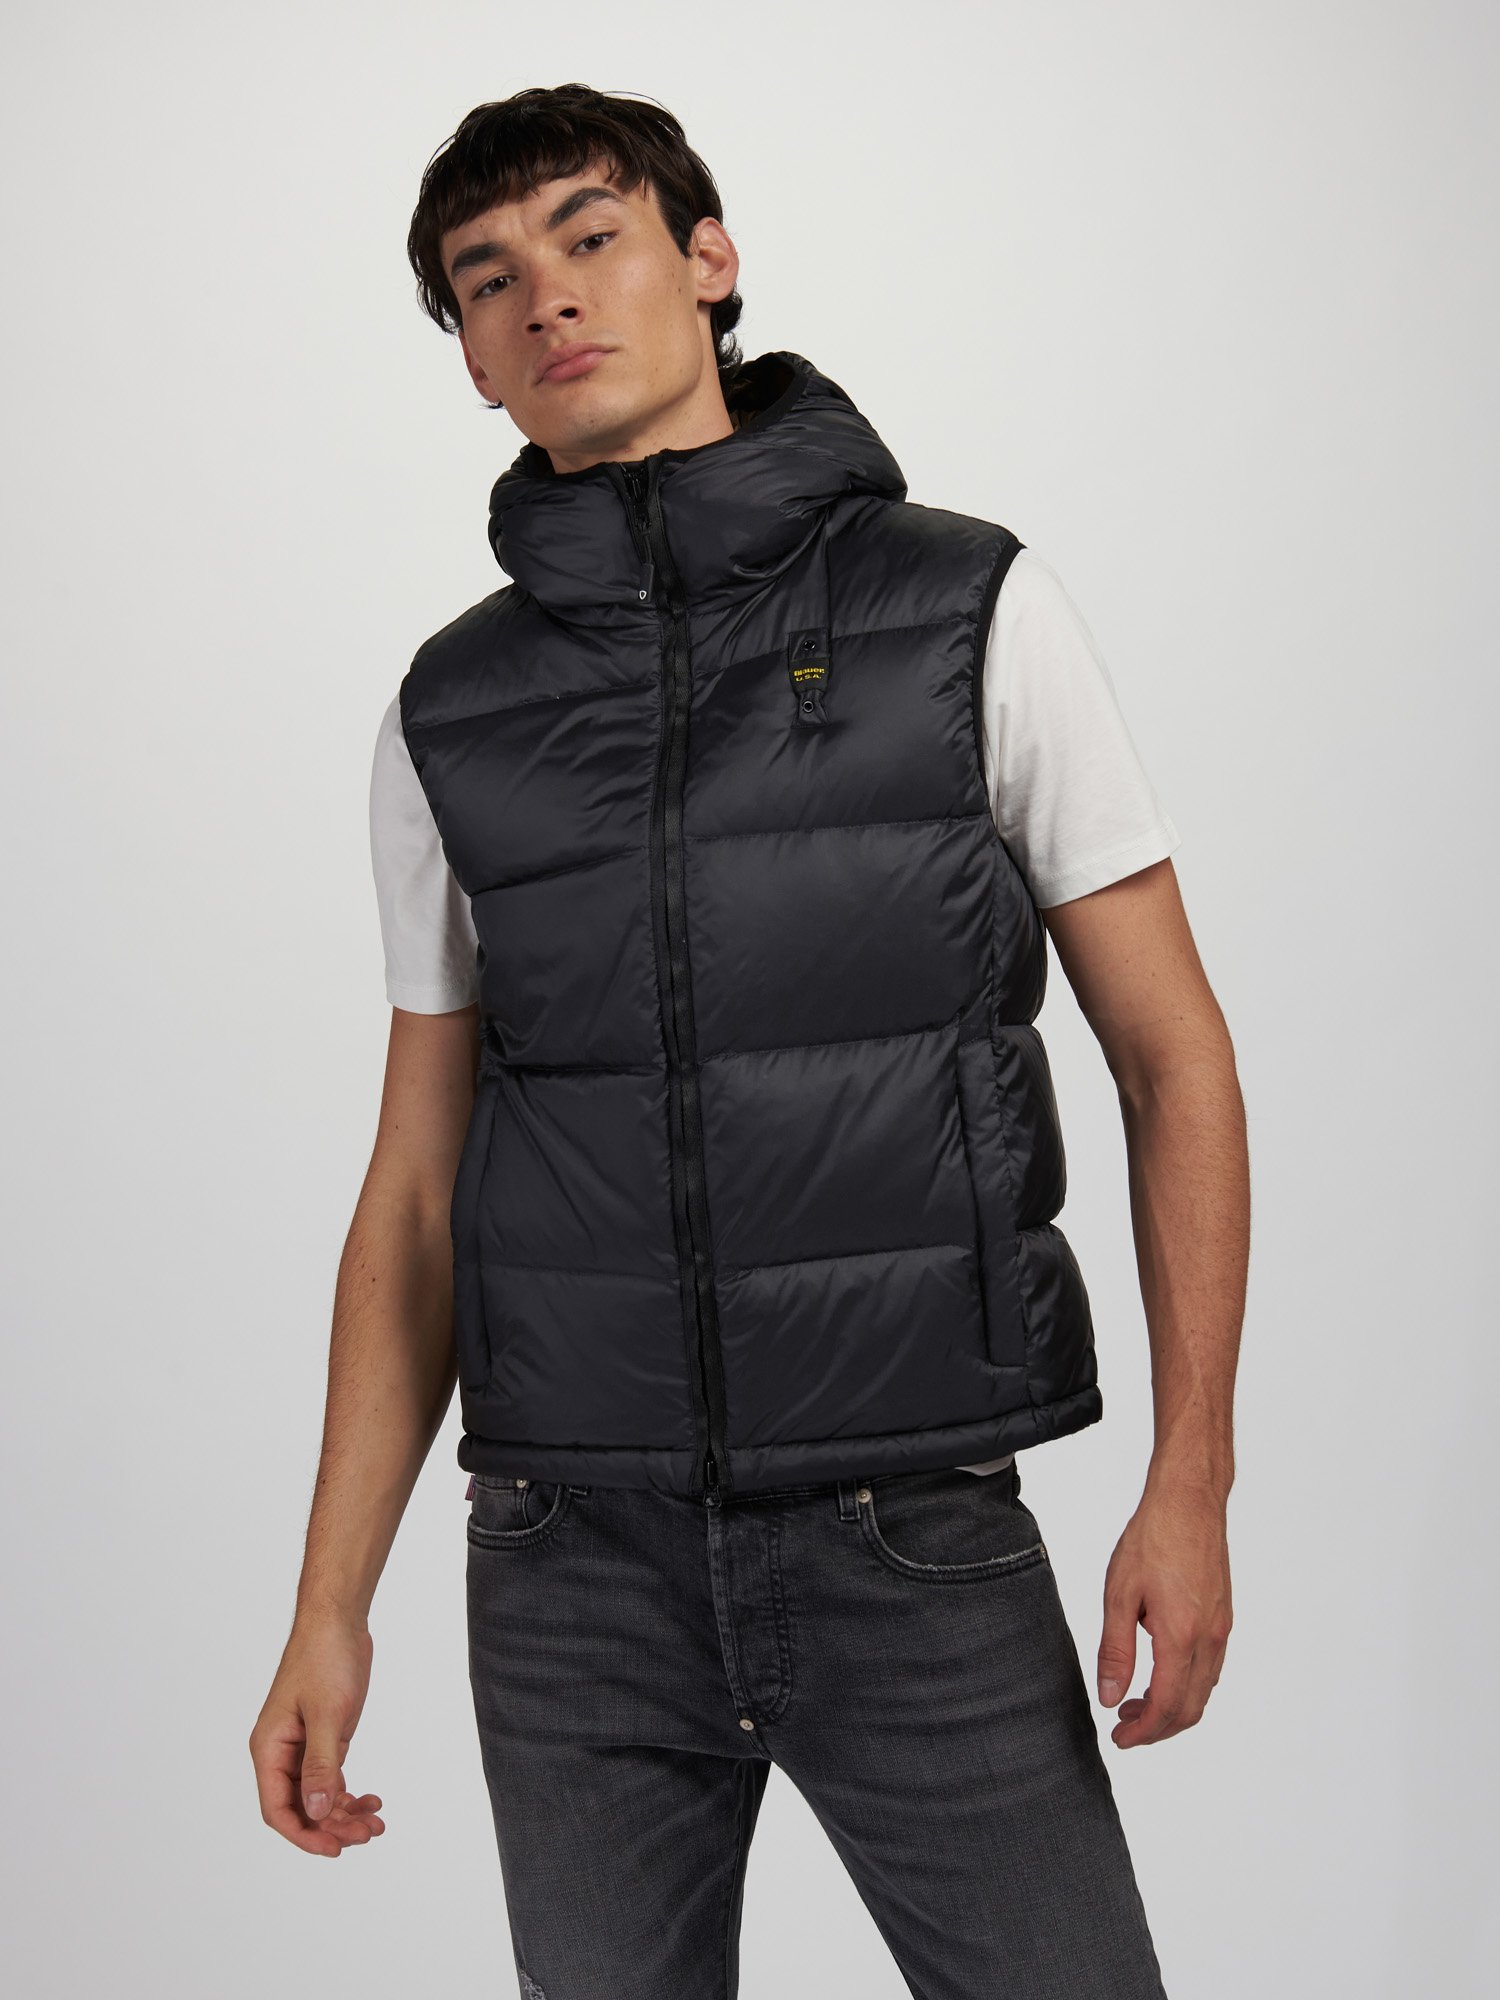 JOSE DOWN VEST WITH HOOD - Blauer